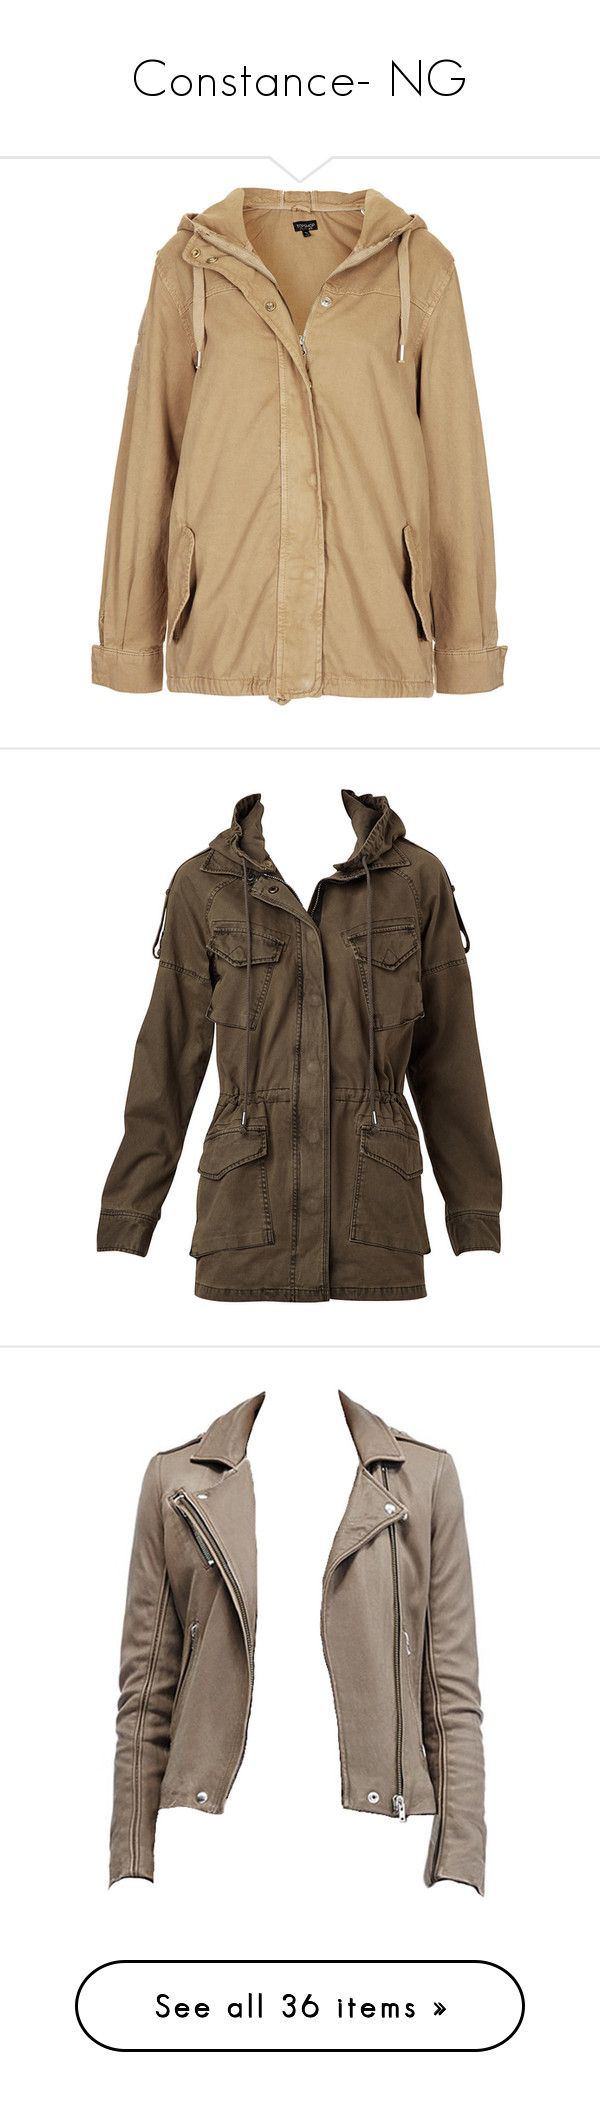 """""""Constance- NG"""" by inestrindade on Polyvore featuring outerwear, jackets, coats, coats & jackets, sand, topshop parka, parka jacket, brown cotton jacket, short-sleeve jackets and brown parka jacket"""